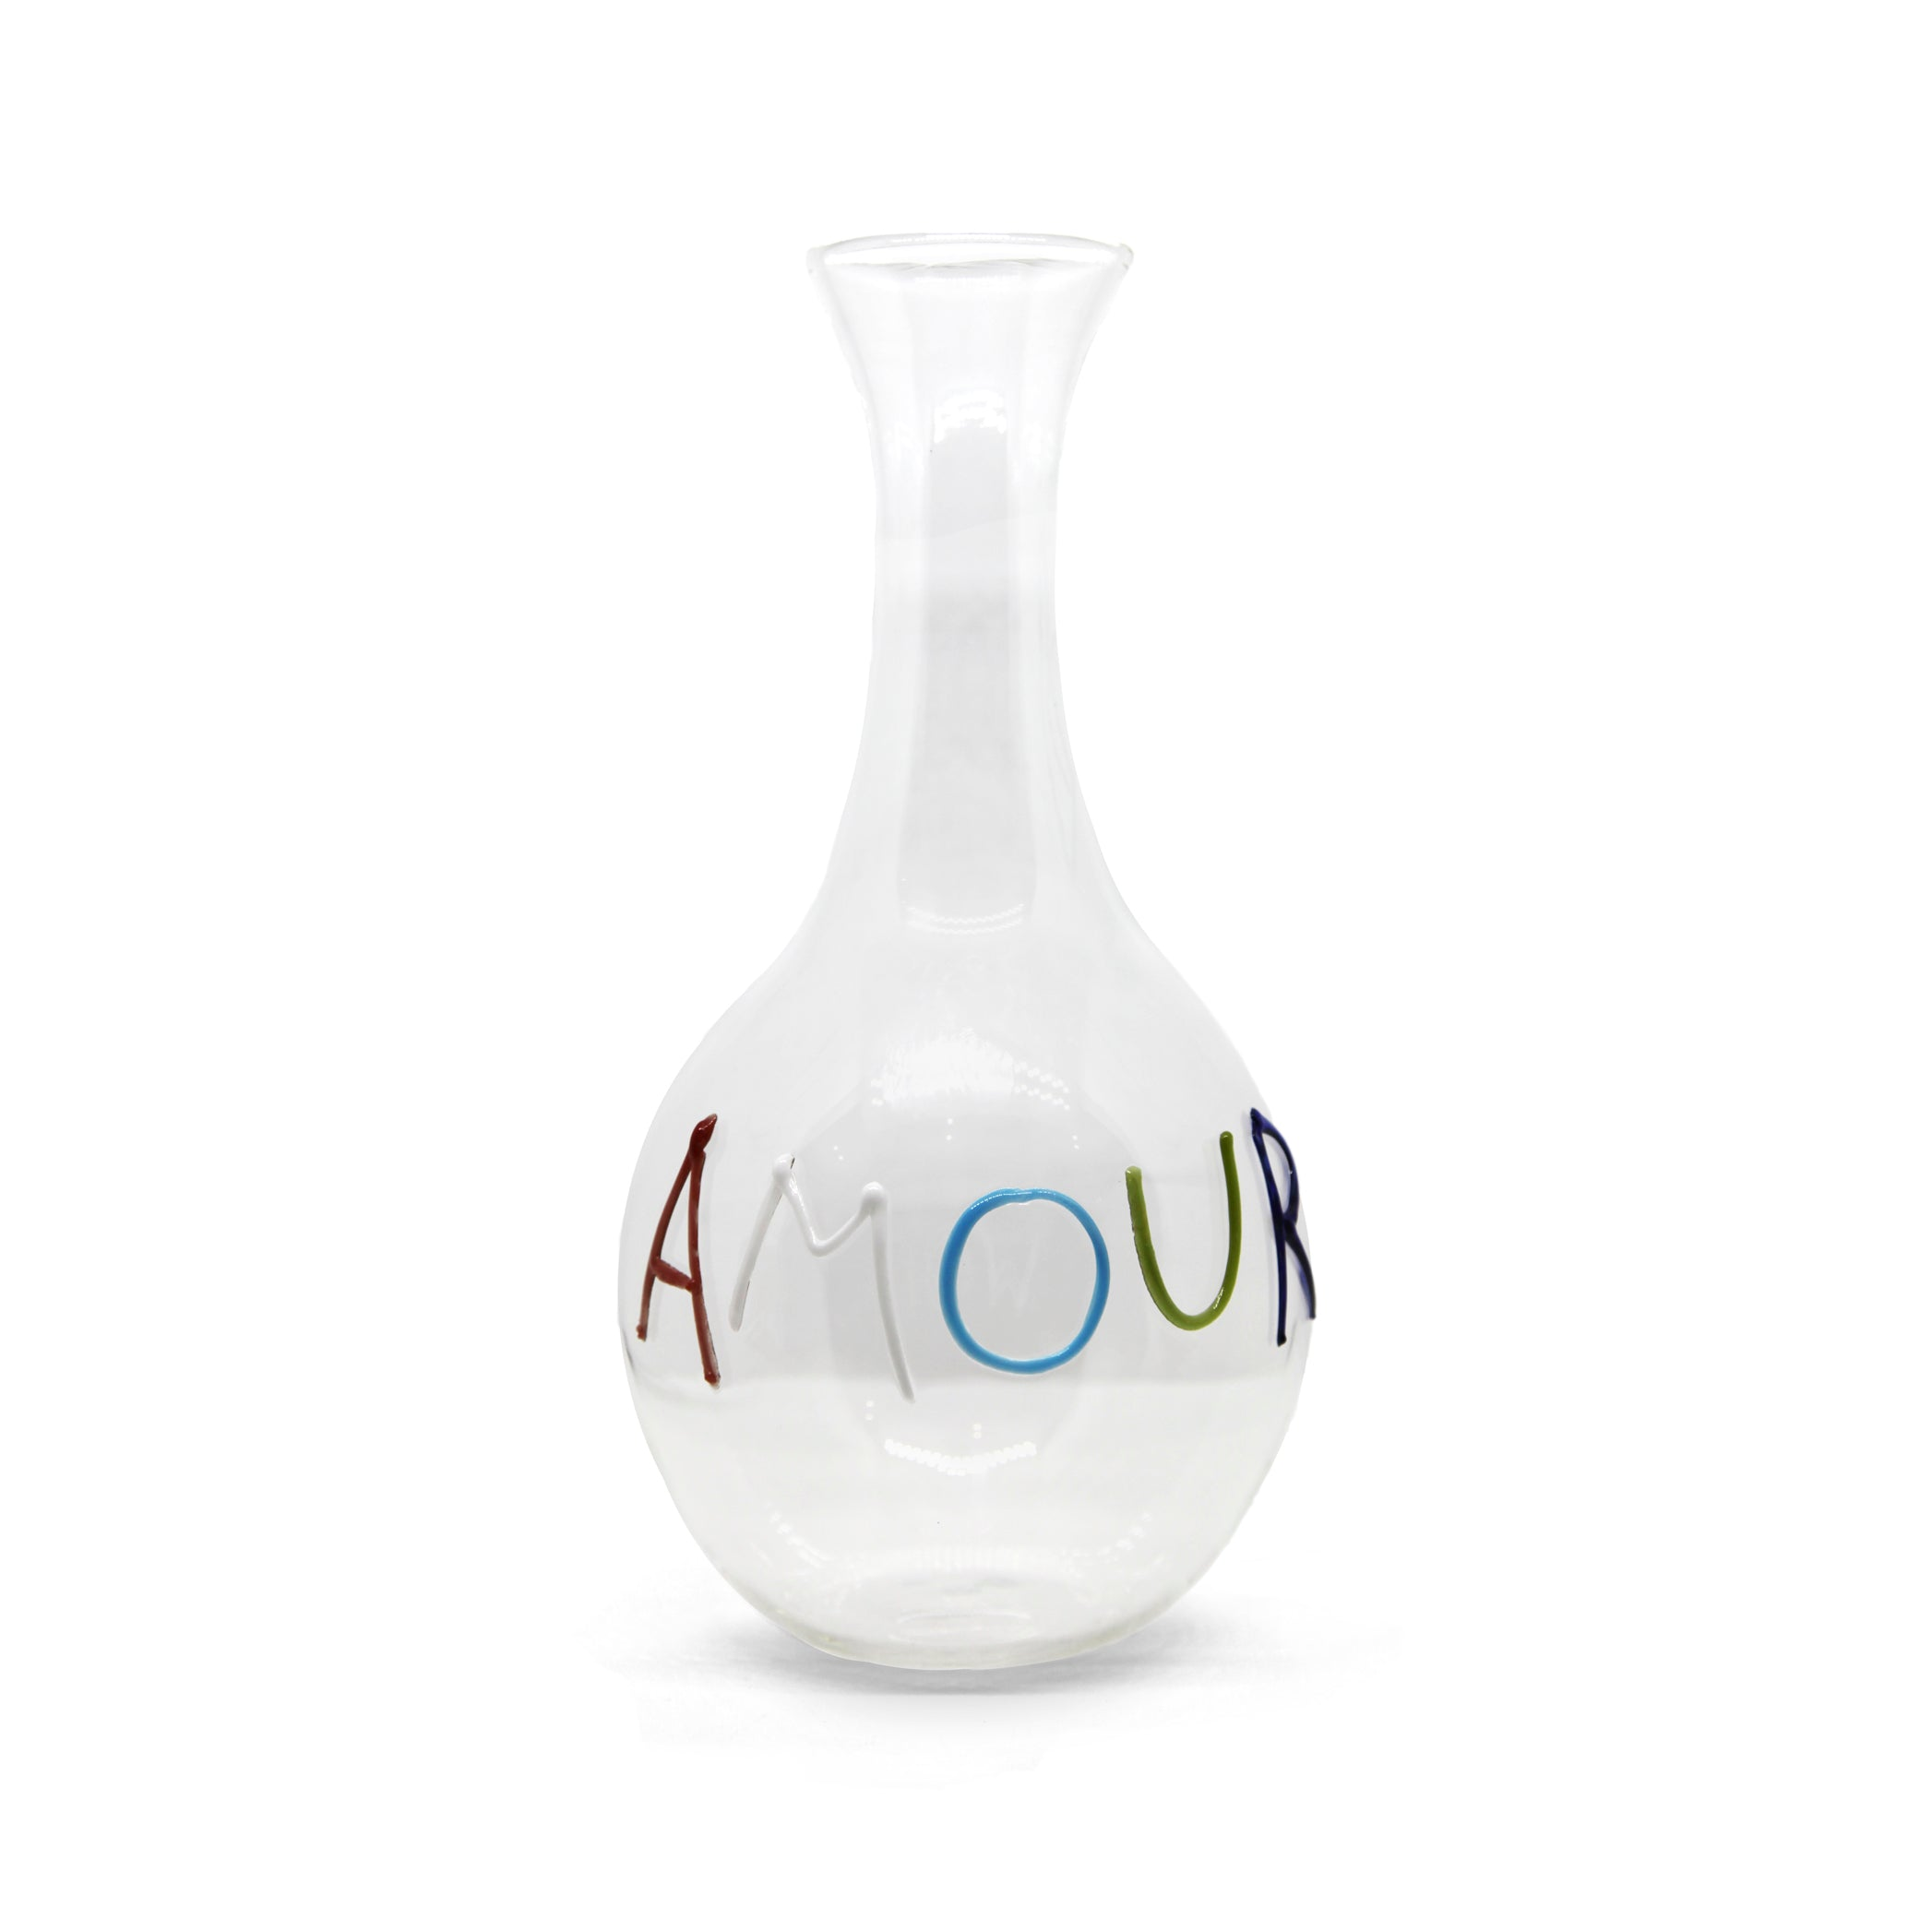 Bespoke Handblown Glass Word Carafe